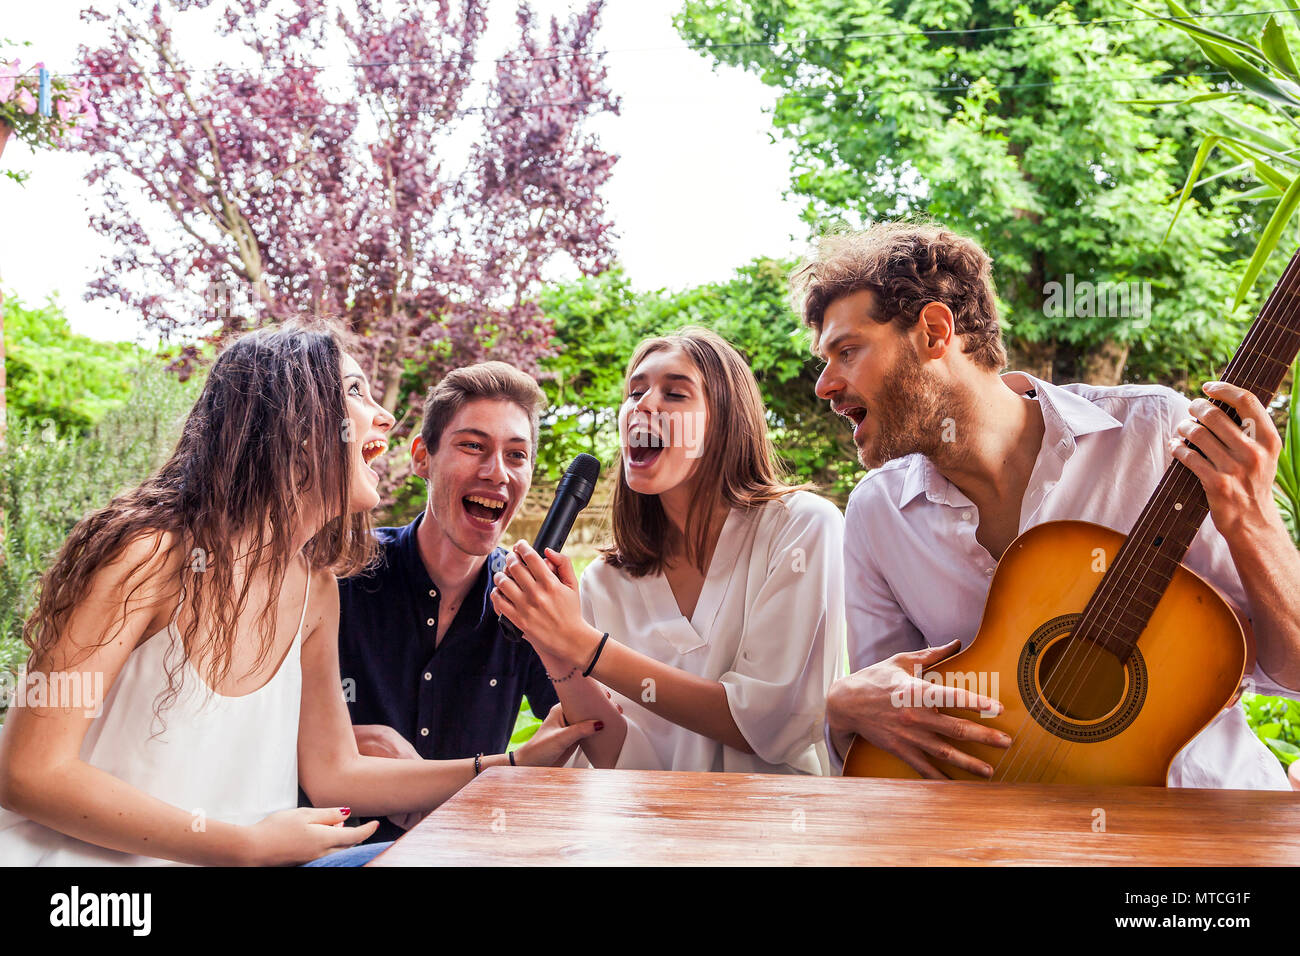 group of young friends having fun singing a song in the